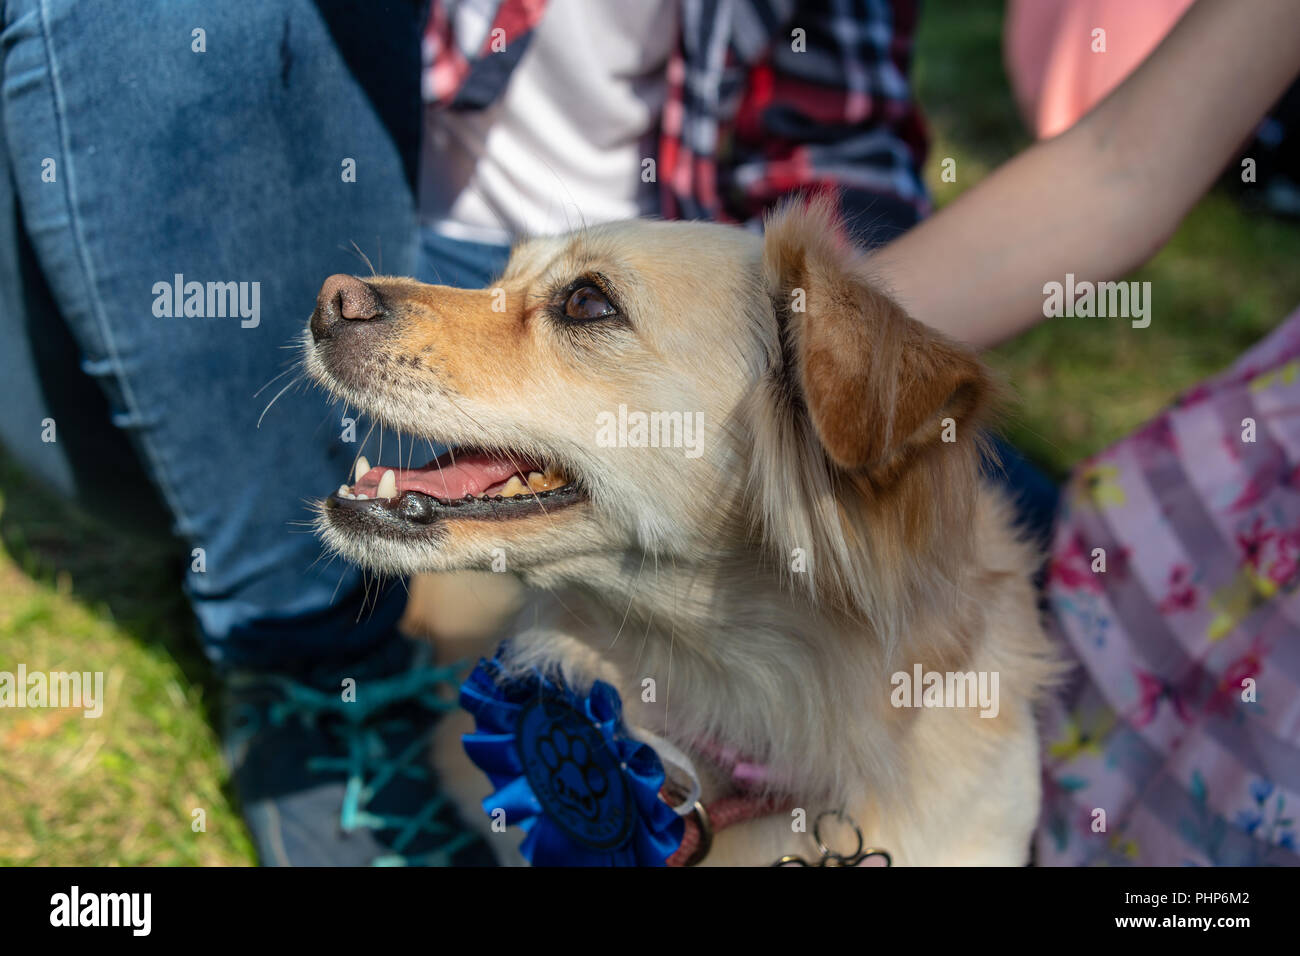 Bournemouth, UK. Sunday 2nd September 2018. A wide variety of dogs take part in the annual Dog Show at the RSPCA Ashley Heath centre near Bournemouth in Dorset. Awards included best condition bitch, waggiest tail, agility and speed test and overall best in show. Credit: Thomas Faull/Alamy Live News Stock Photo